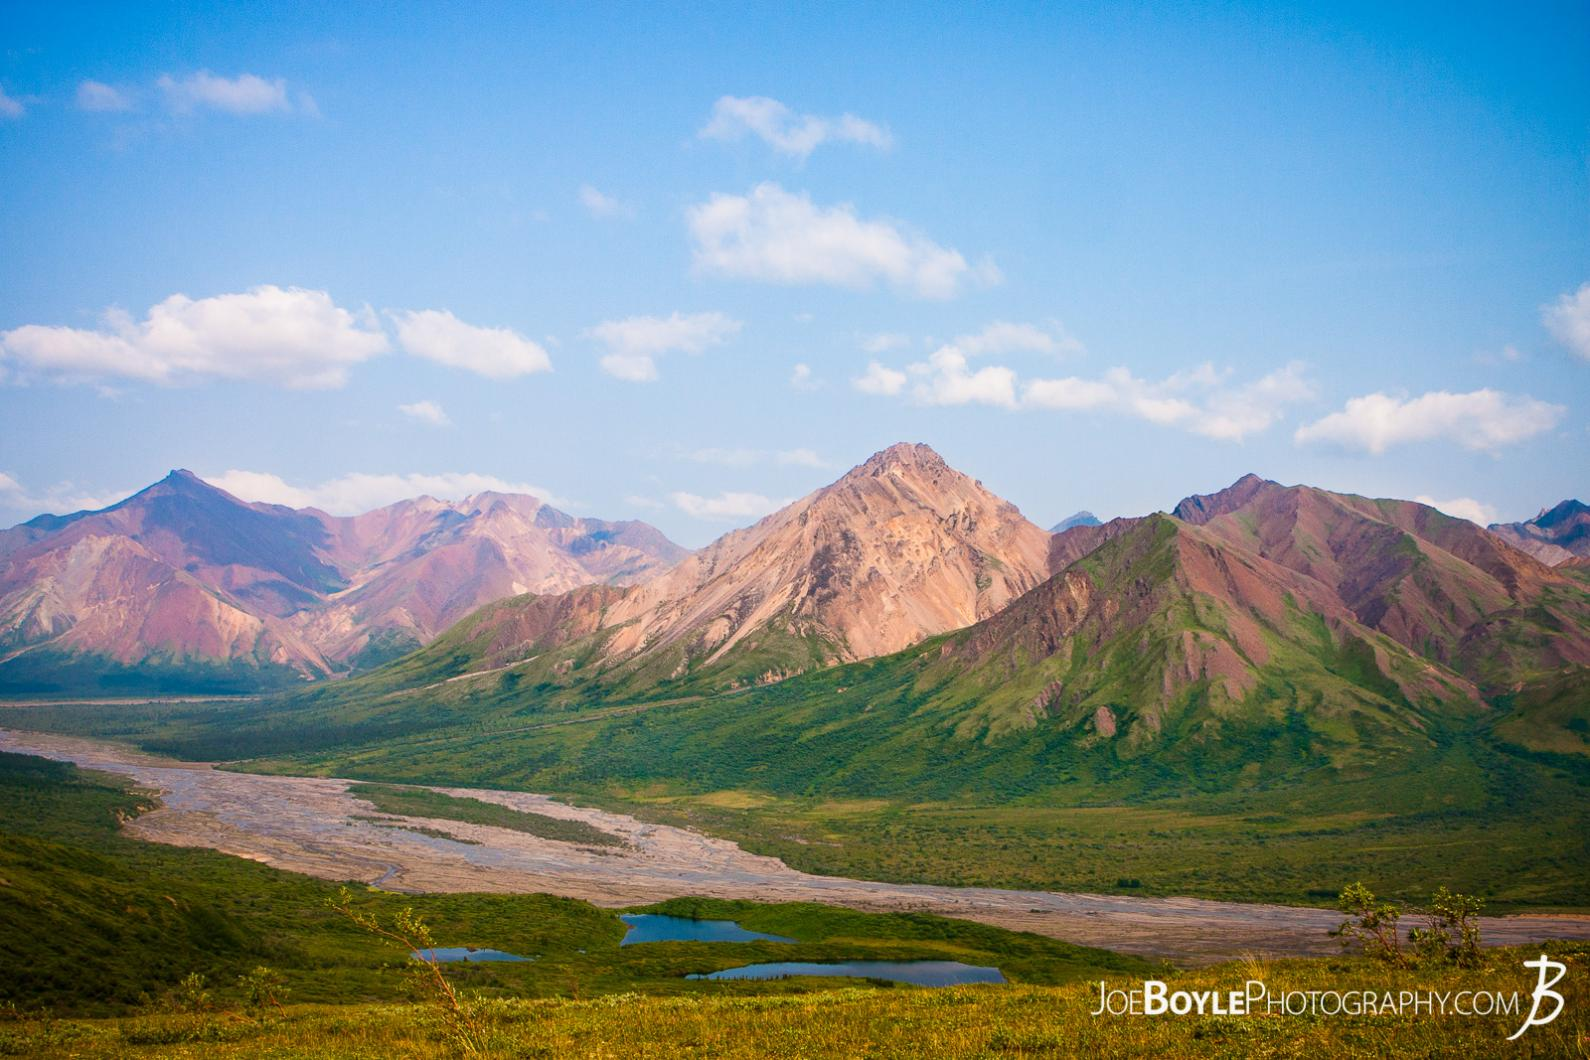 denali-national-park-mountains-fields-blue-sky-in-grid-6